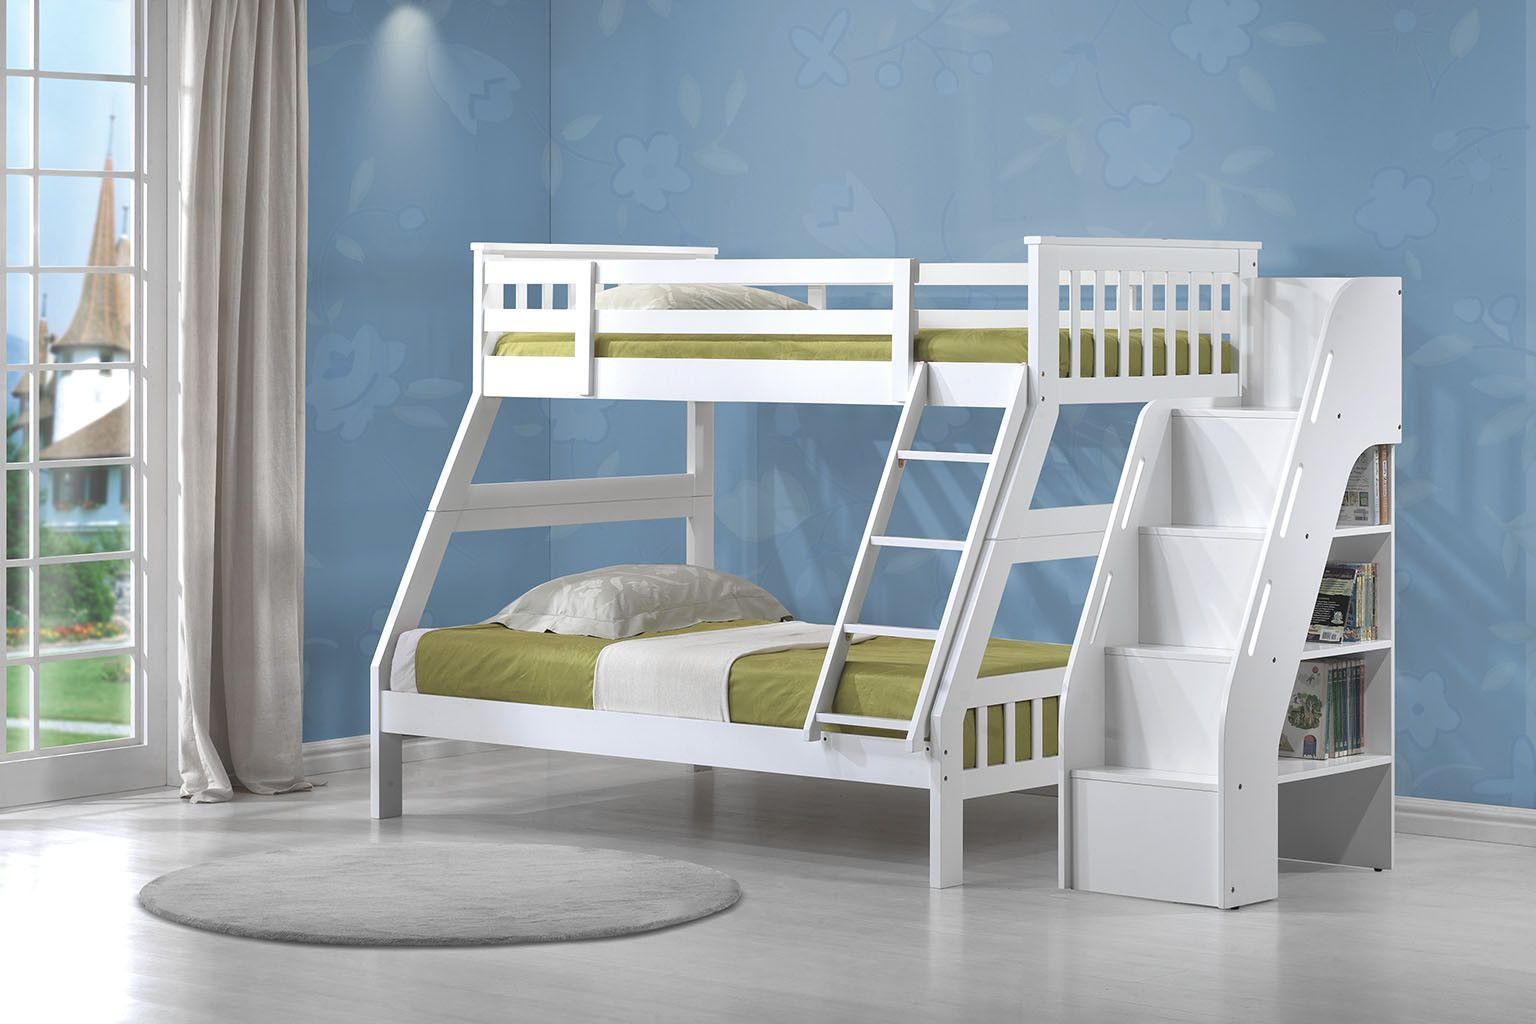 Twinfull bunk bed u bookcase ladder not convertible twin full